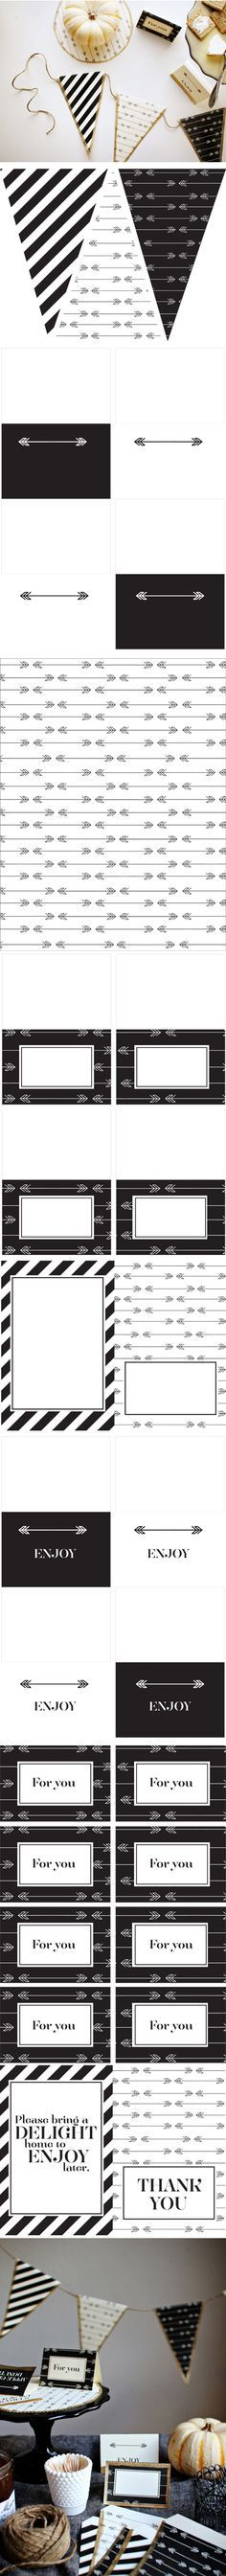 39 best Printables images on Pinterest Free printable, Free - free lined paper for kids